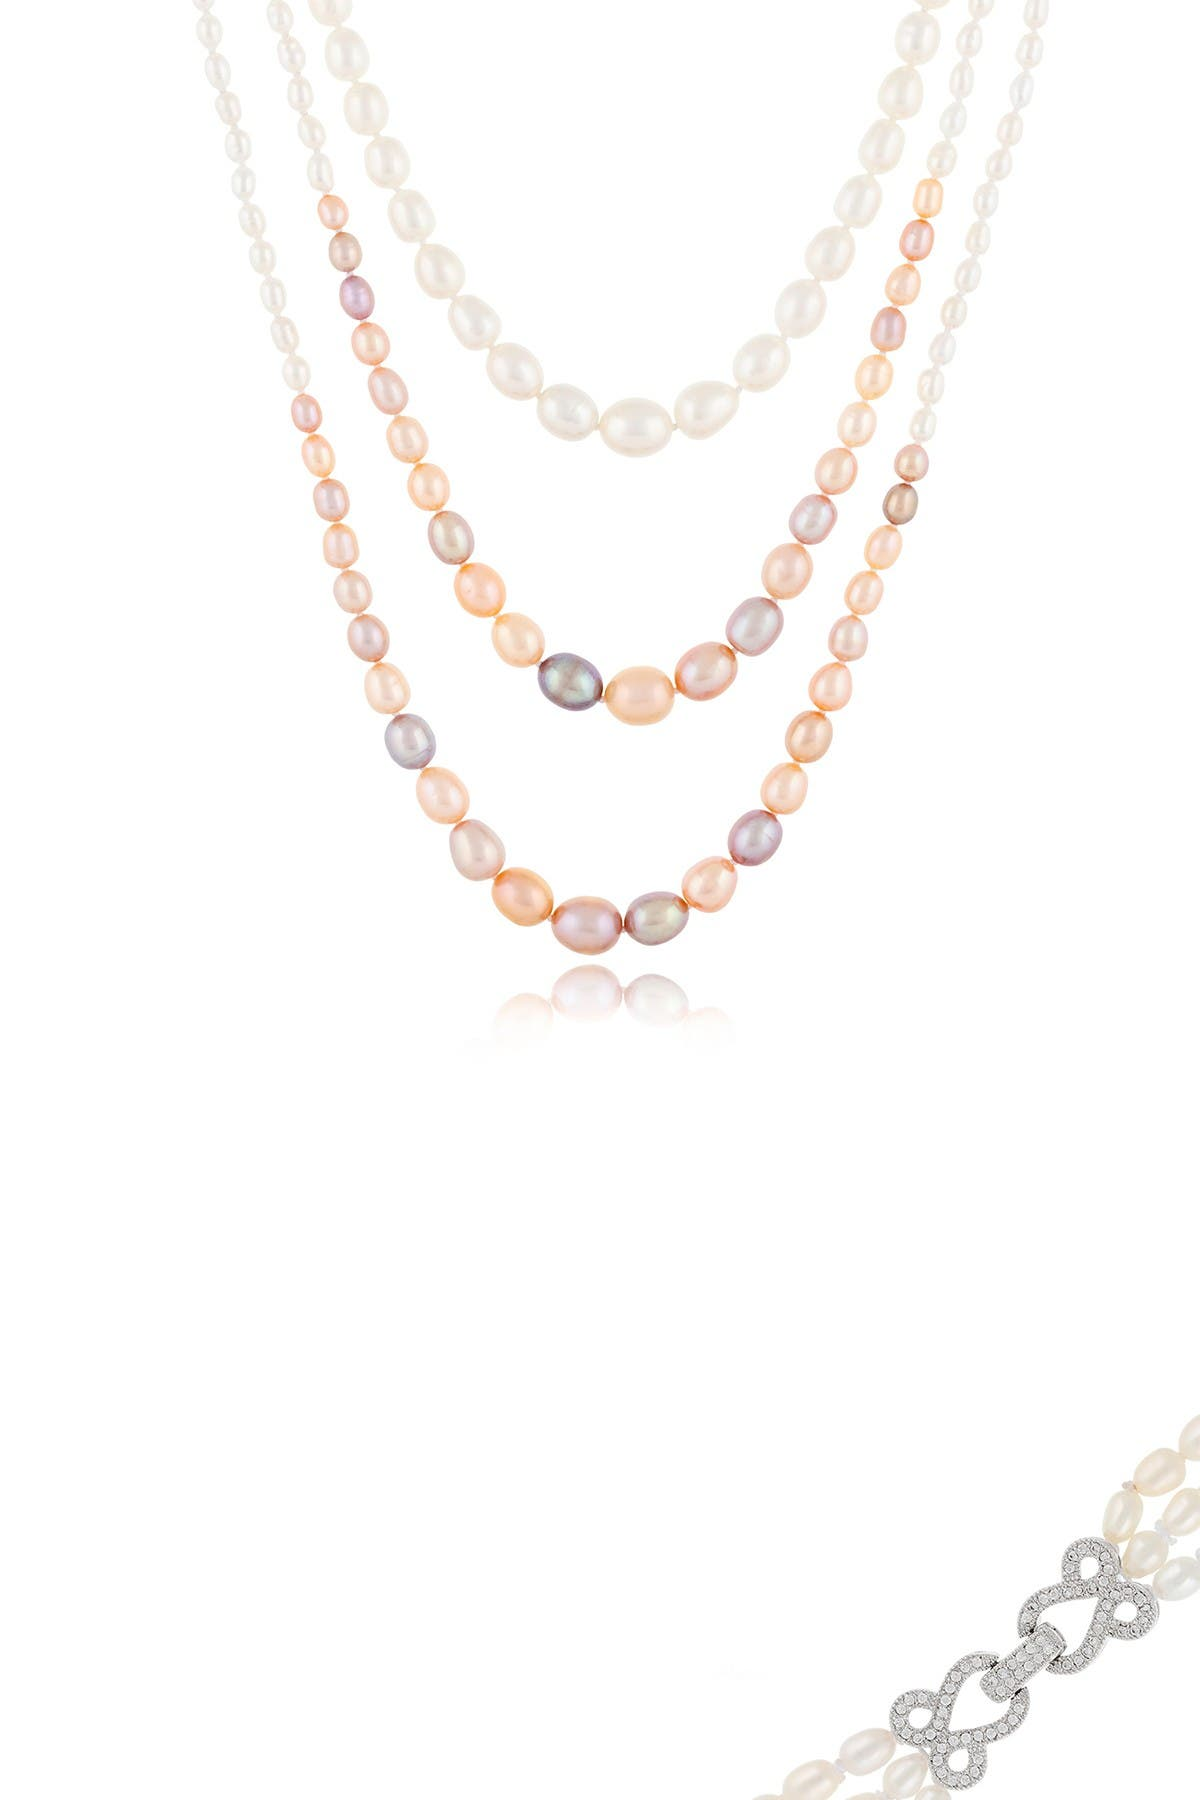 Image of Splendid Pearls Three Strand Multicolor 3-11mm Freshwater Pearl Necklace